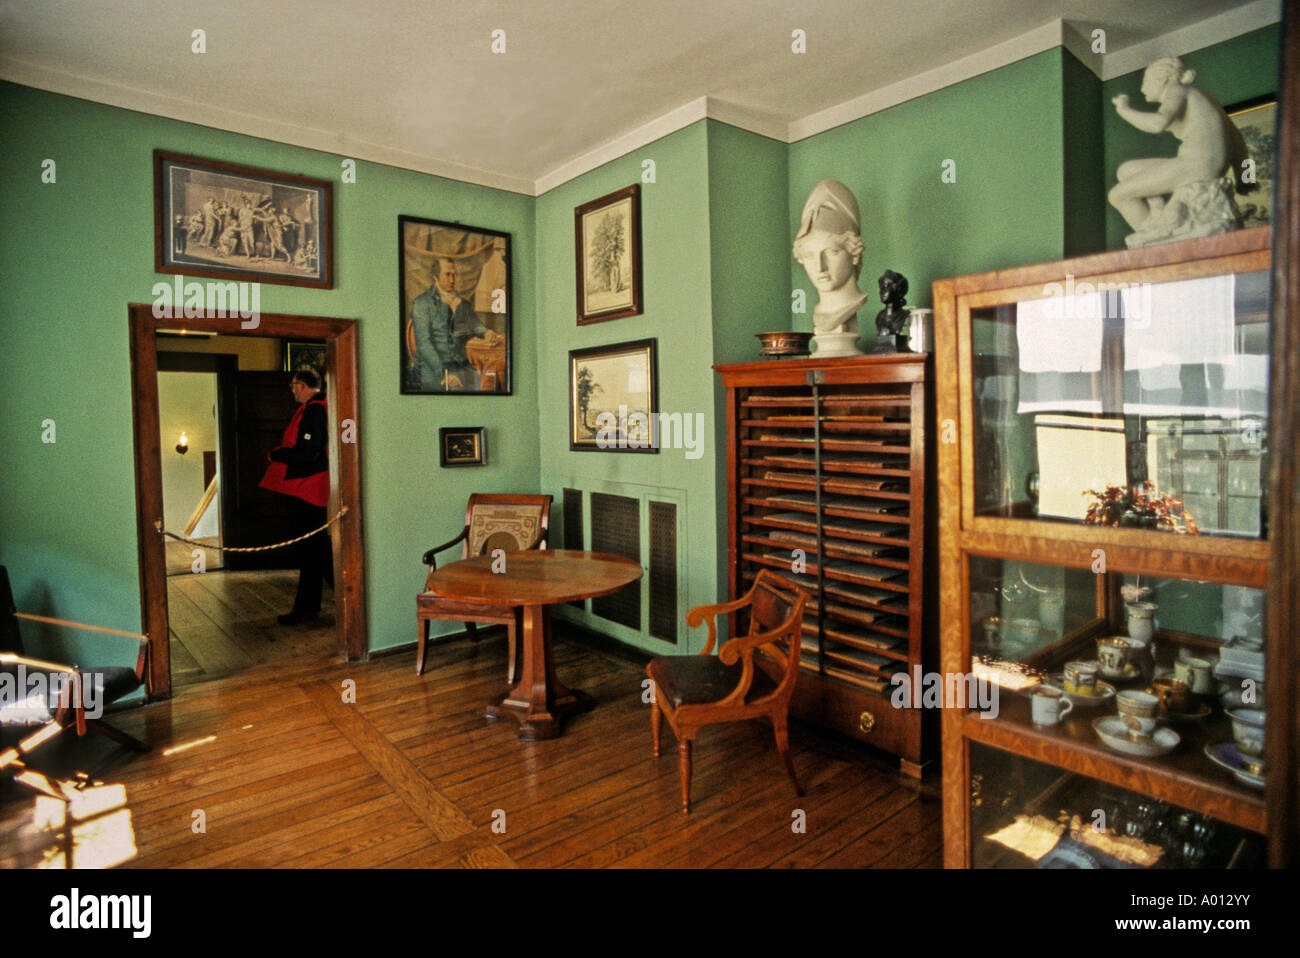 goethe haus weimar deutschland stockfoto bild 9844910 alamy. Black Bedroom Furniture Sets. Home Design Ideas